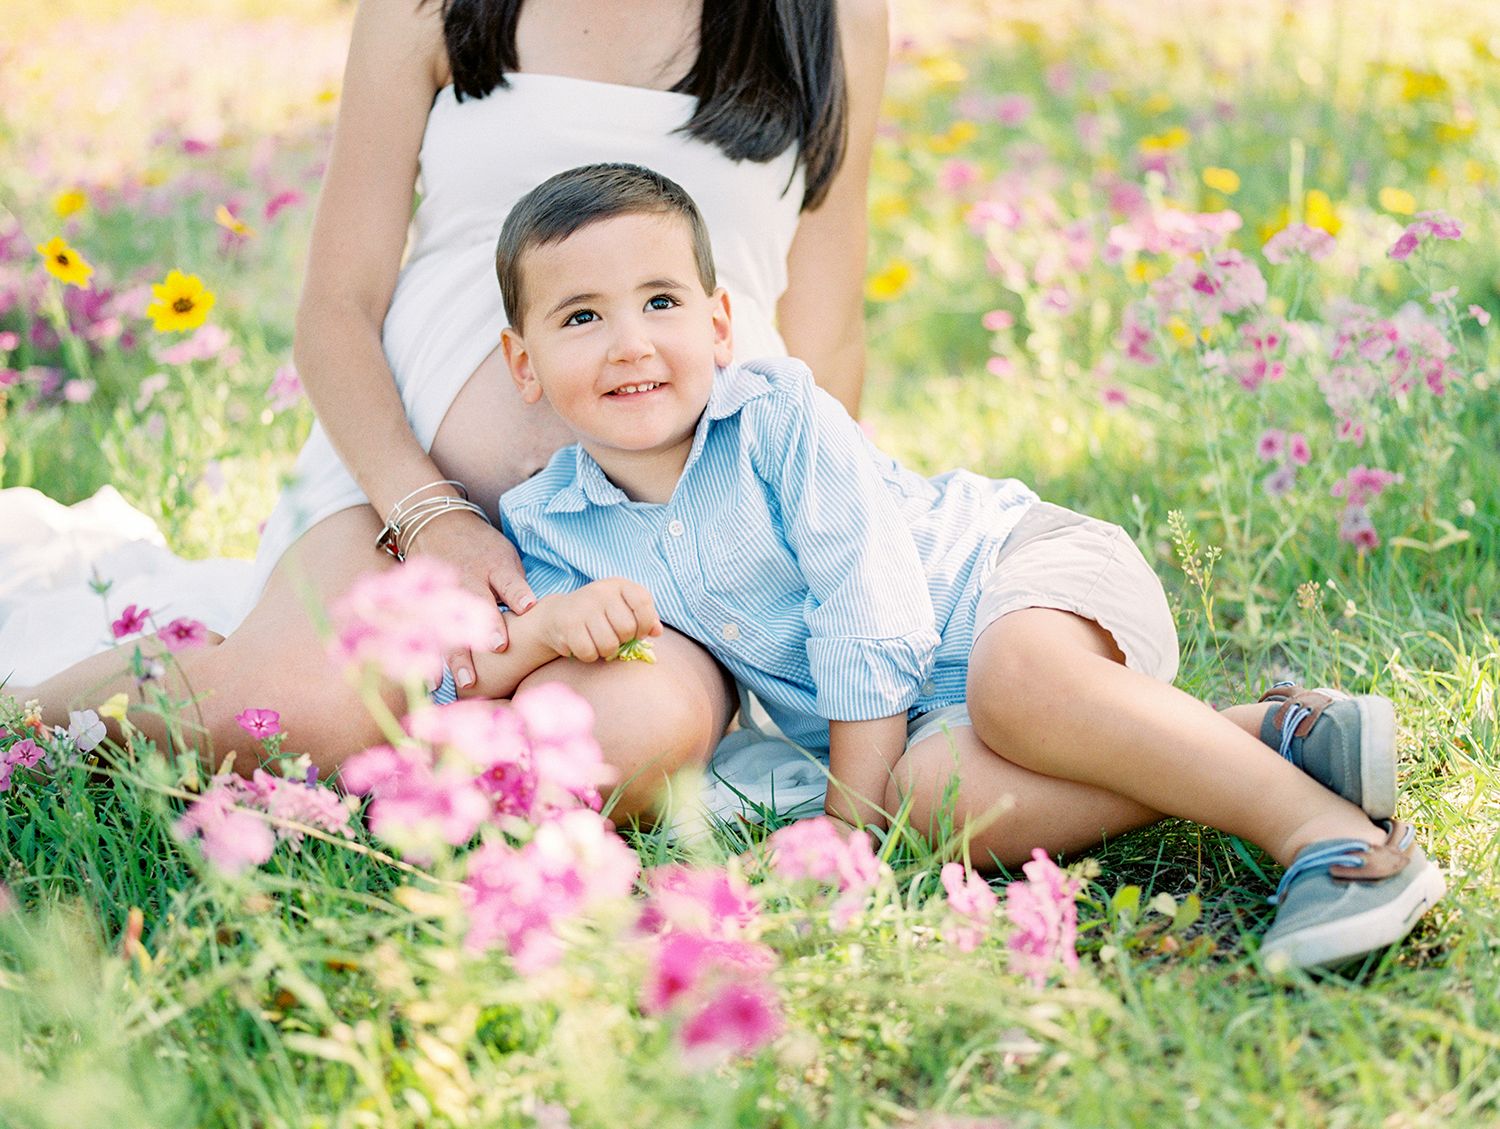 Family Maternity Session in a Flower Field- Lisa Silva Photography- Jacksonville and St. Augustine Florida Fine Art Film Photography- 4.jpg